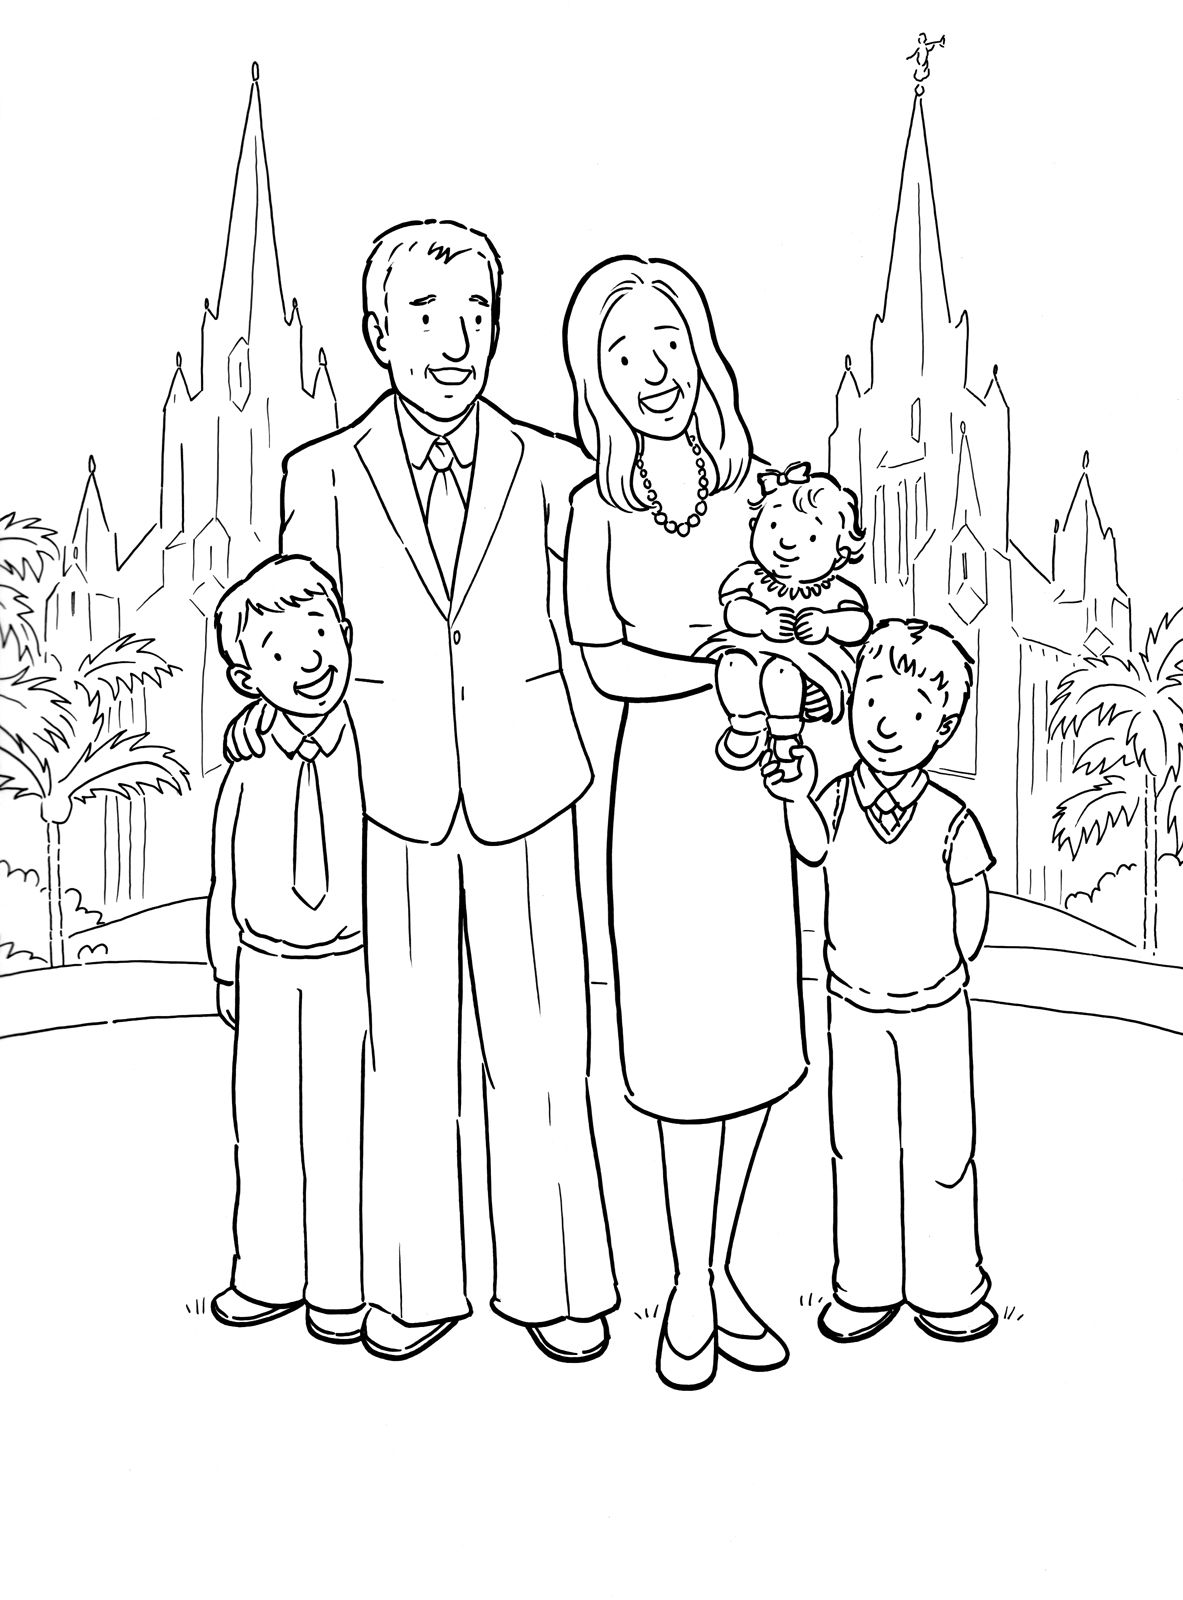 a happy family at the san diego temple a primary coloring page from lds org lds mormon [ 1183 x 1600 Pixel ]